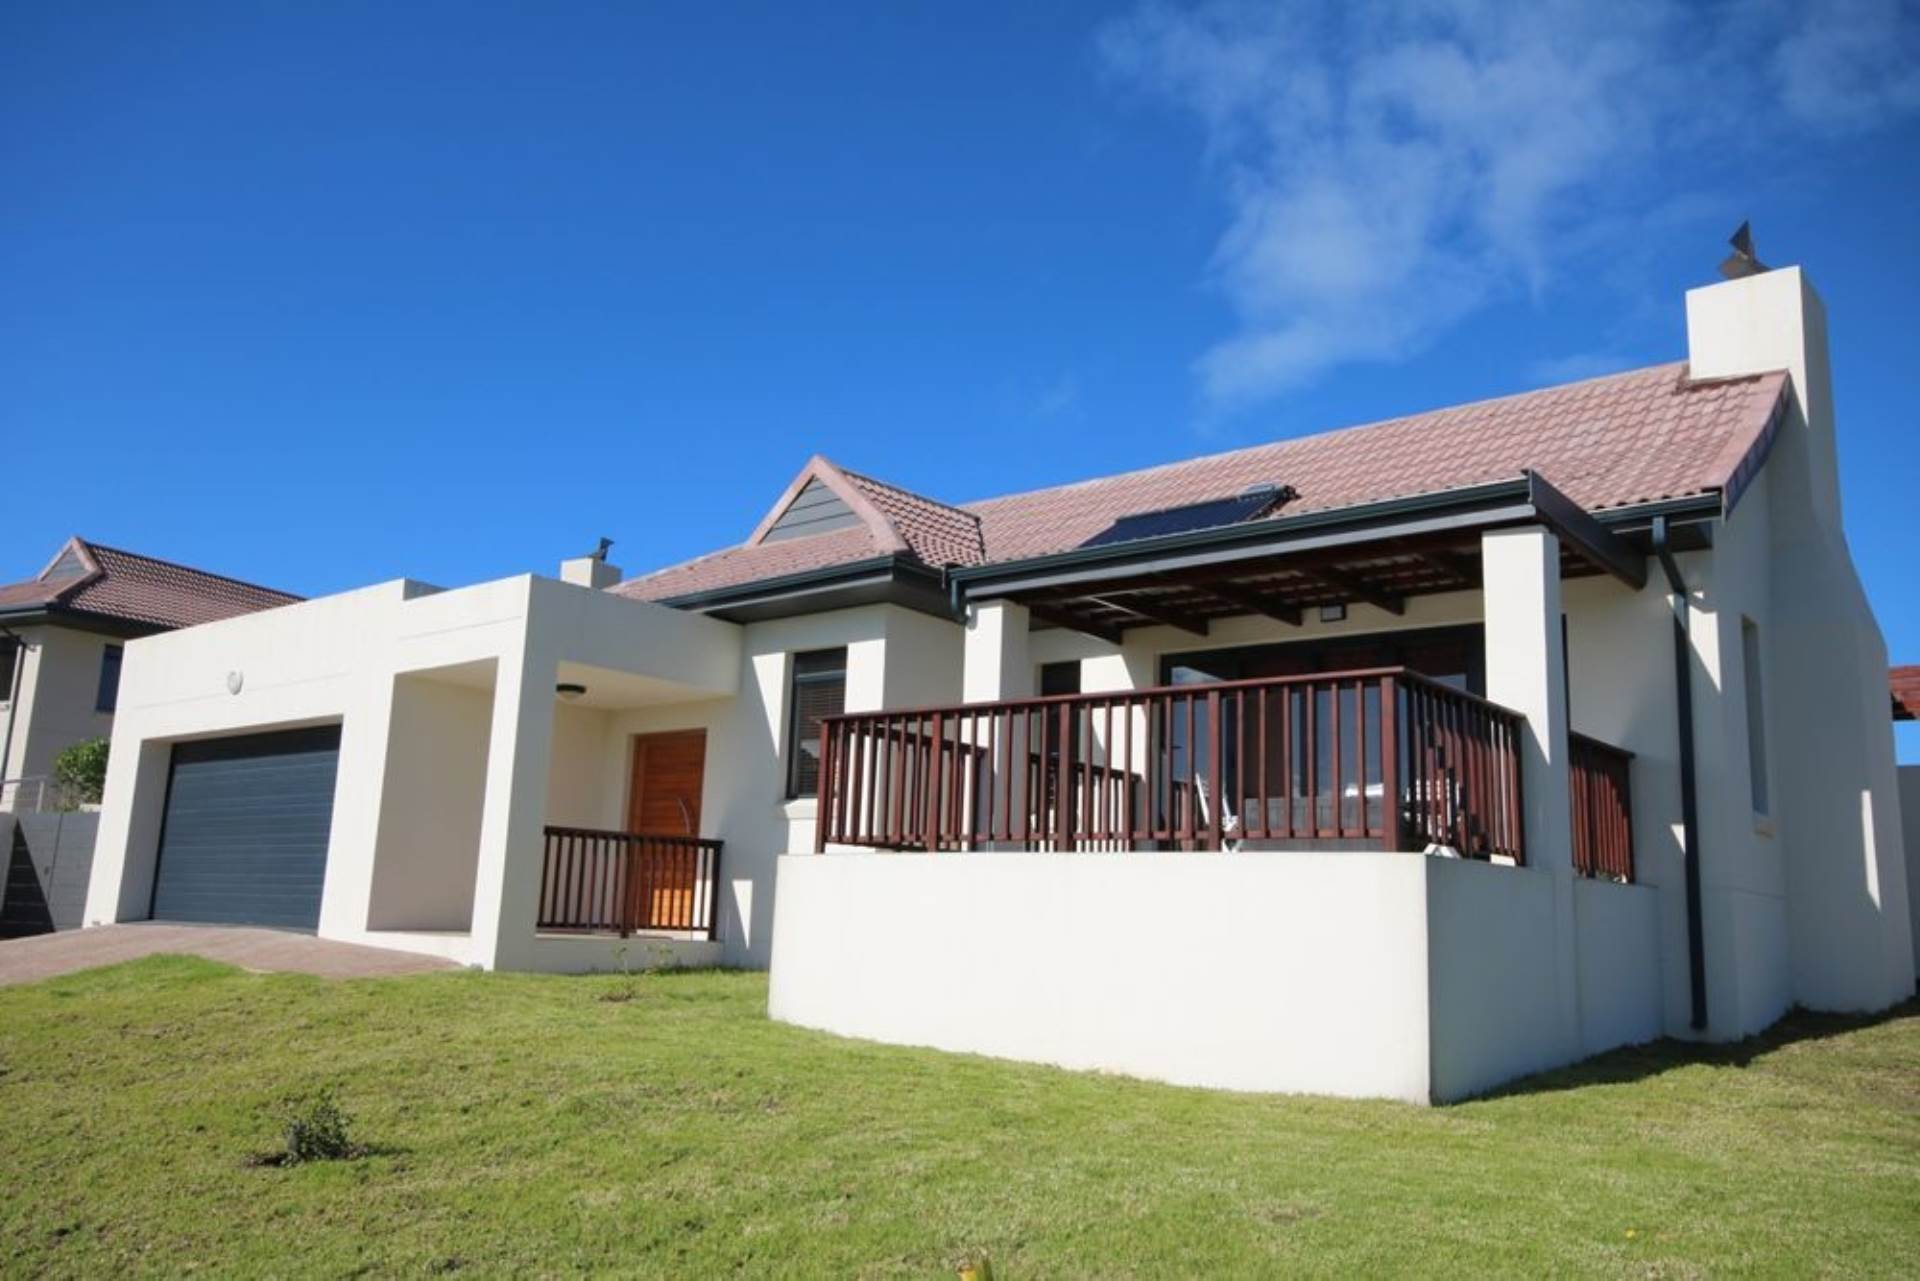 3 BedroomHouse For Sale In Glen Garriff